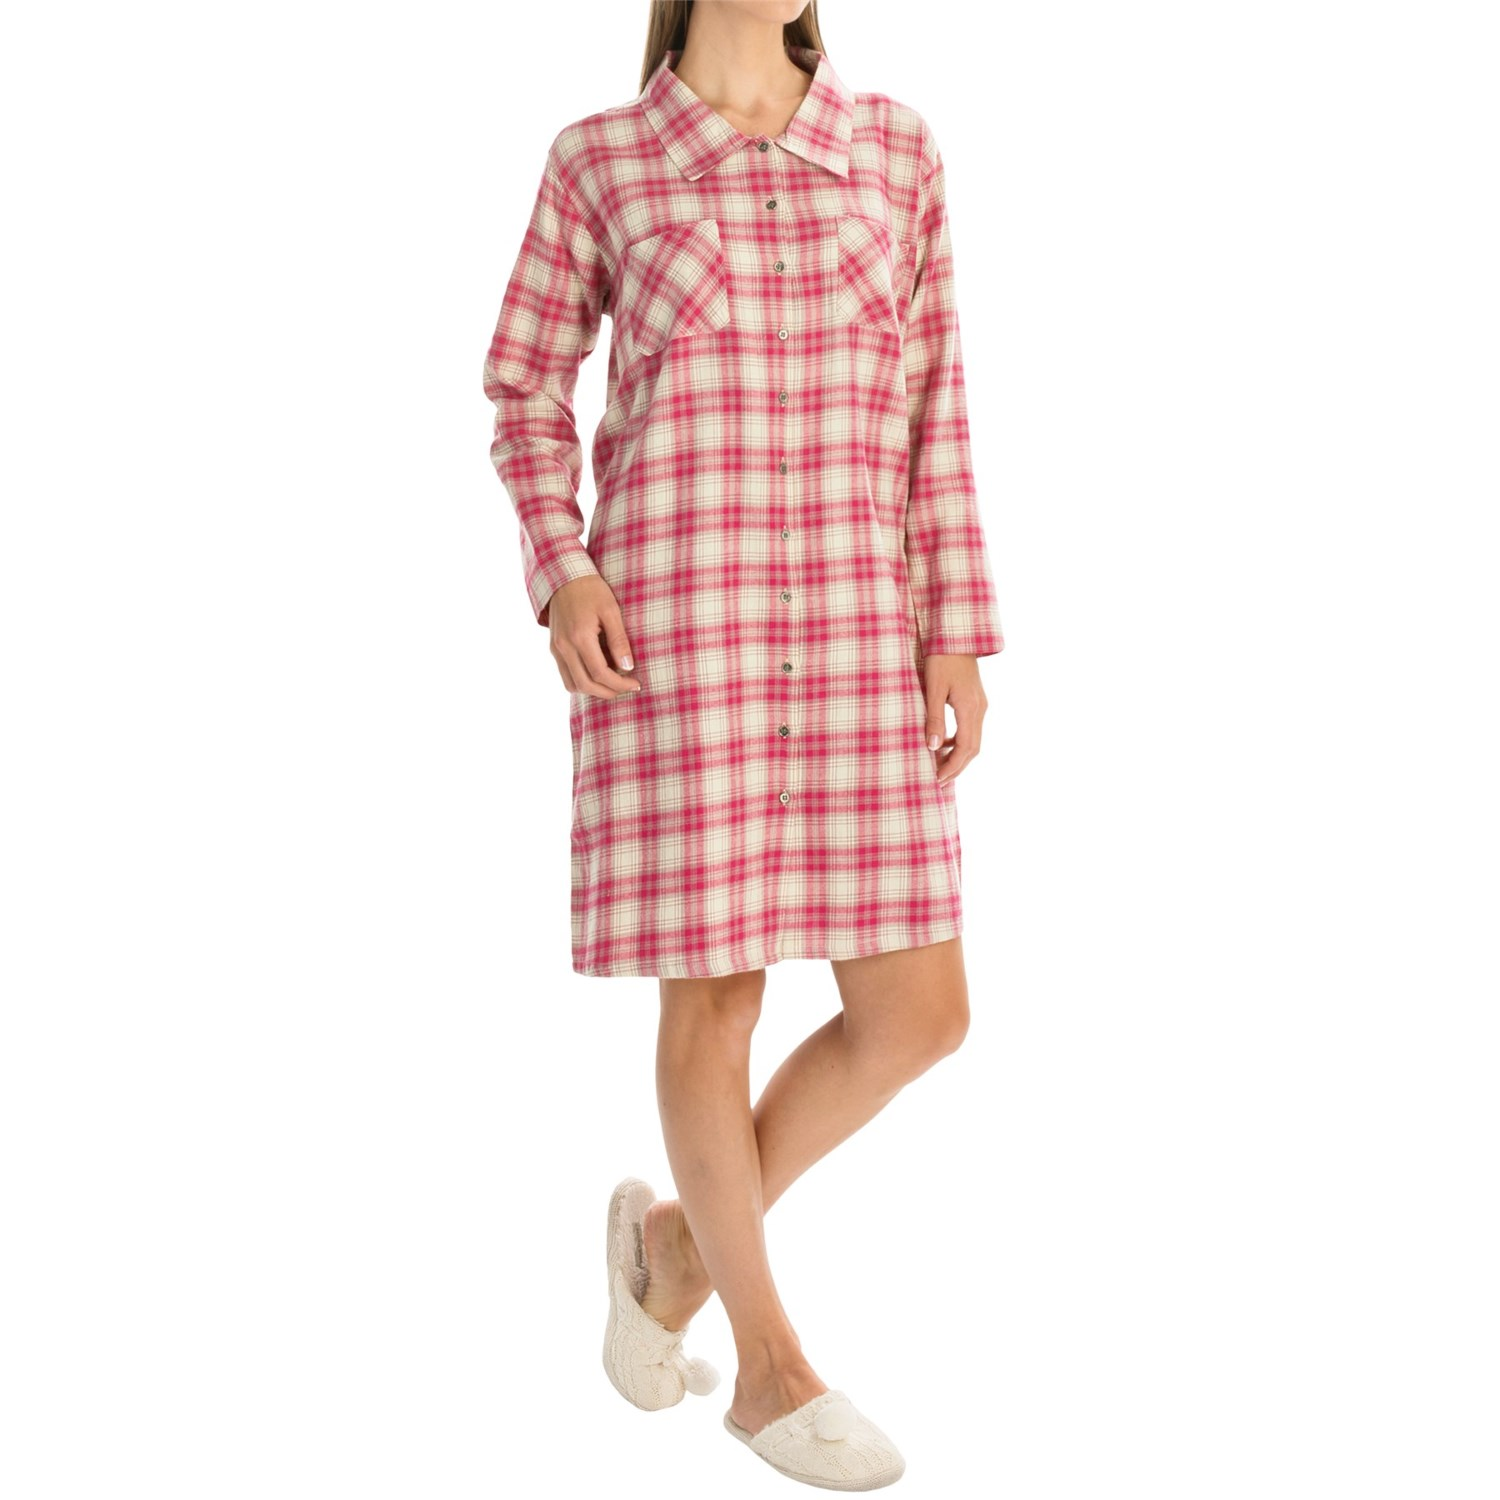 Nina capri flannel button nightshirt for women save 61 for Womens flannel night shirts